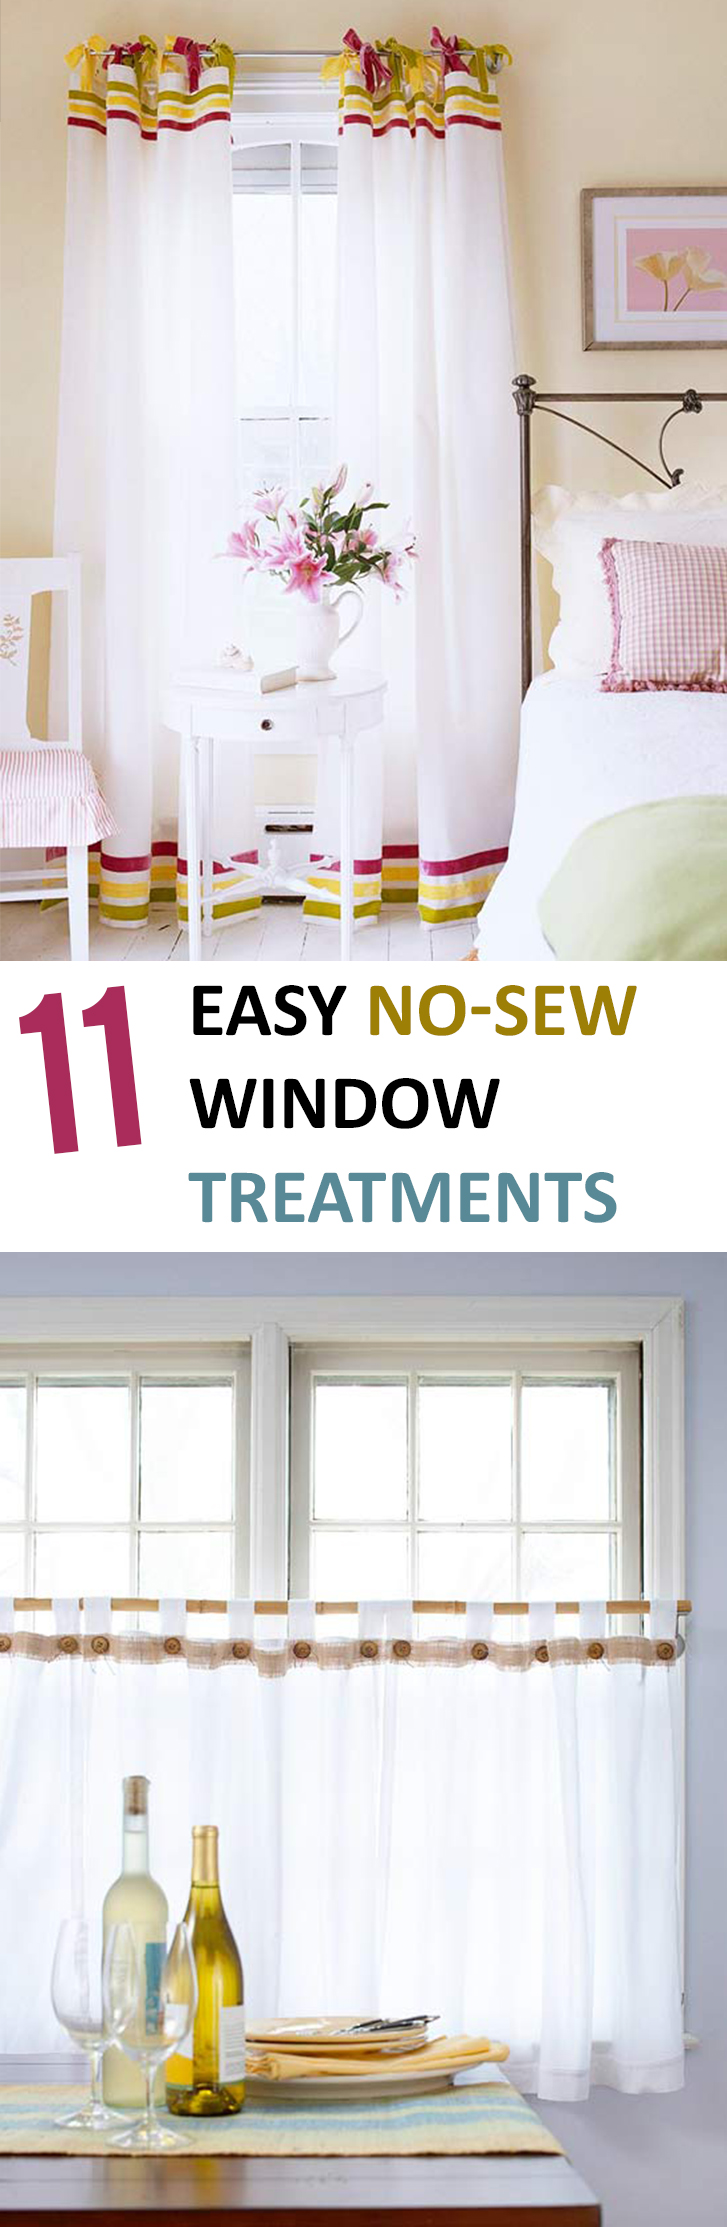 DIY Window Treatments, DIY Window, Window Treatments, Popular Pin, Home Decor, DIY Home Decor, No-Sew Projects, No-Sew Window Treatments.